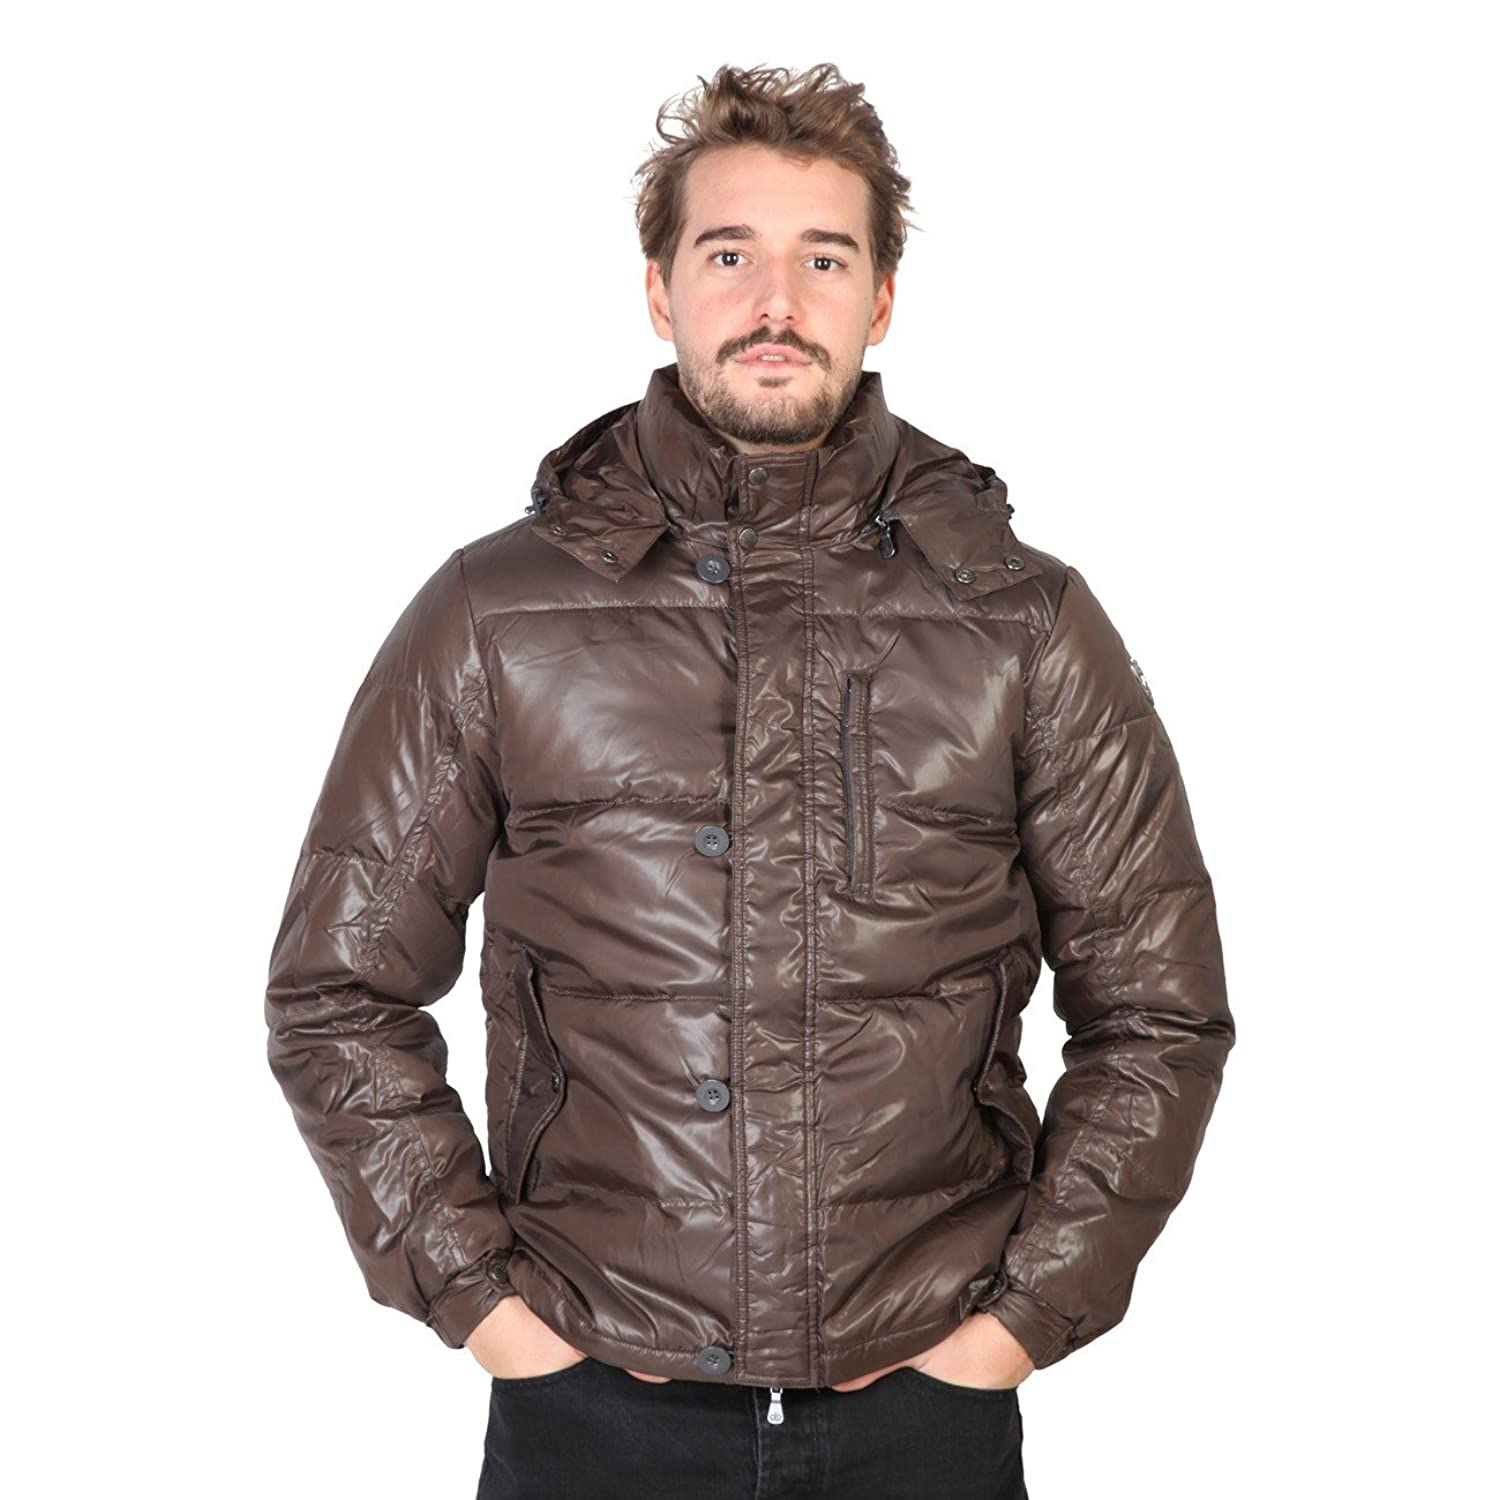 SEBASTIAN - Men's Hooded Jacket - Removable